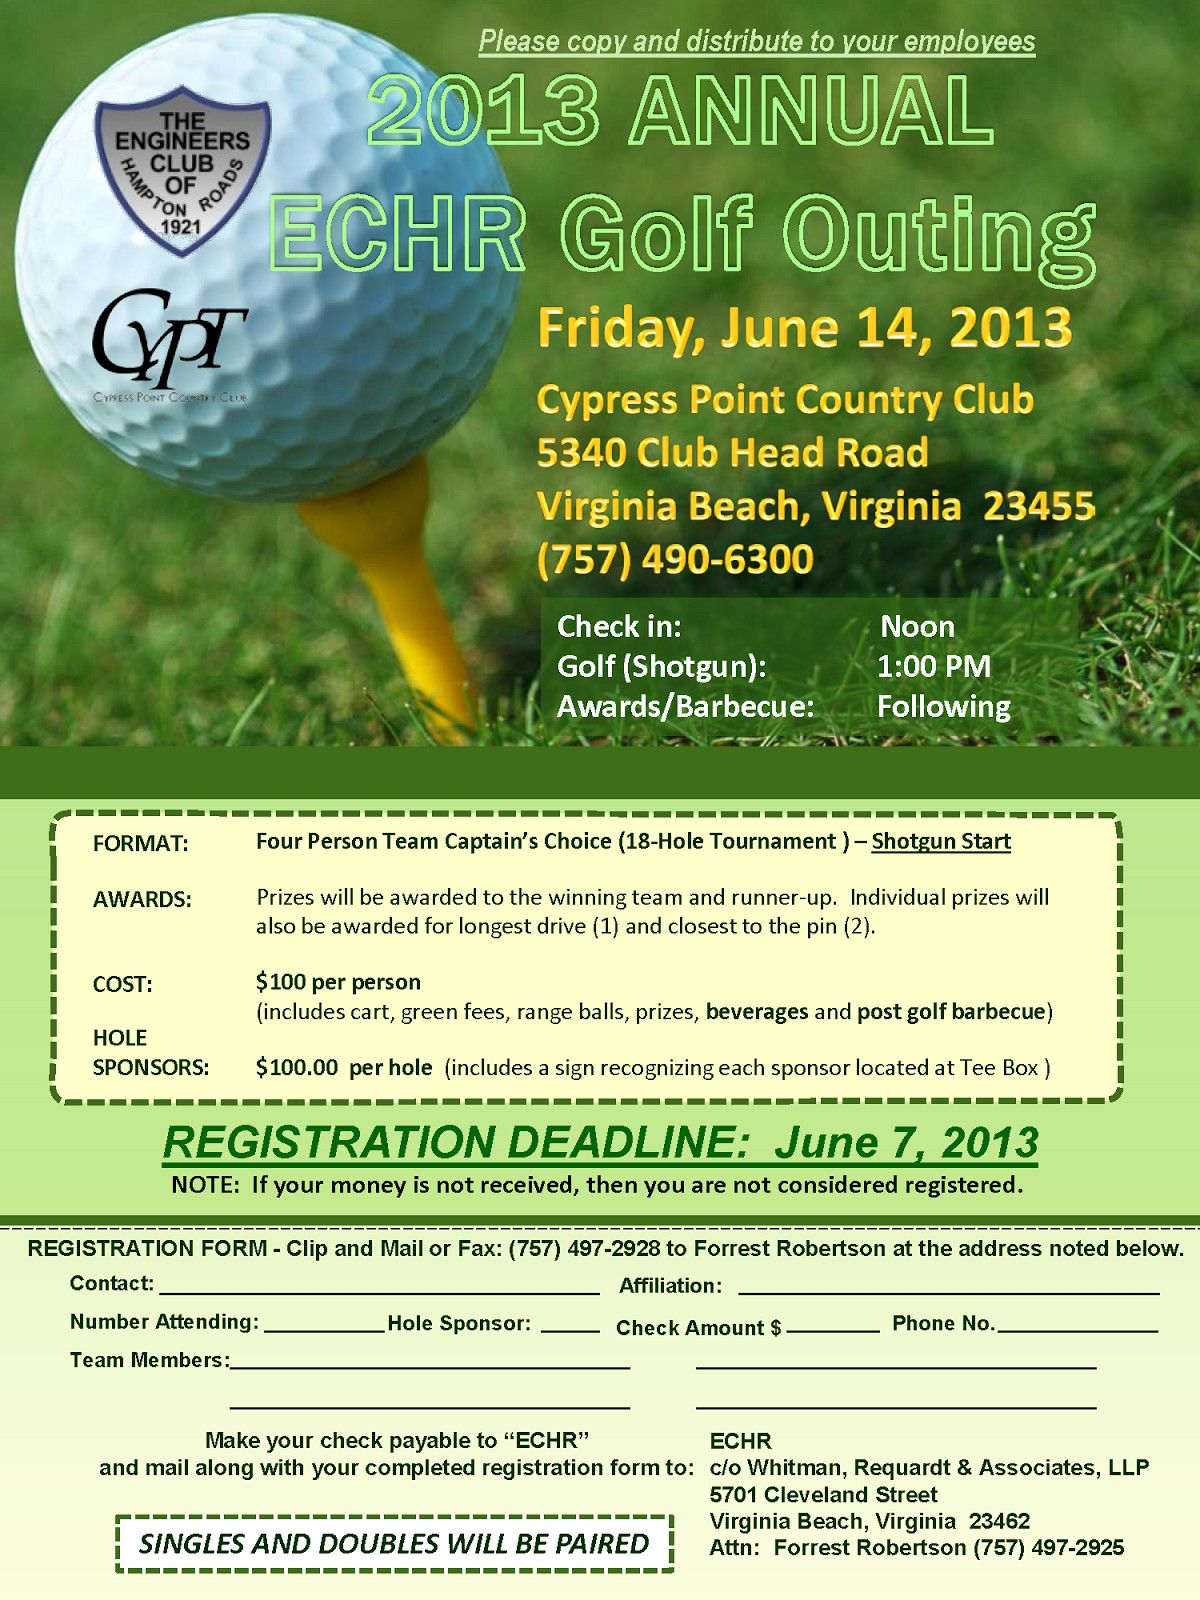 Free Golf Flyer Template Golf Outing Flyer Template Golf Outing Golf Tournament Flyer Template Free golf tournament flyer template